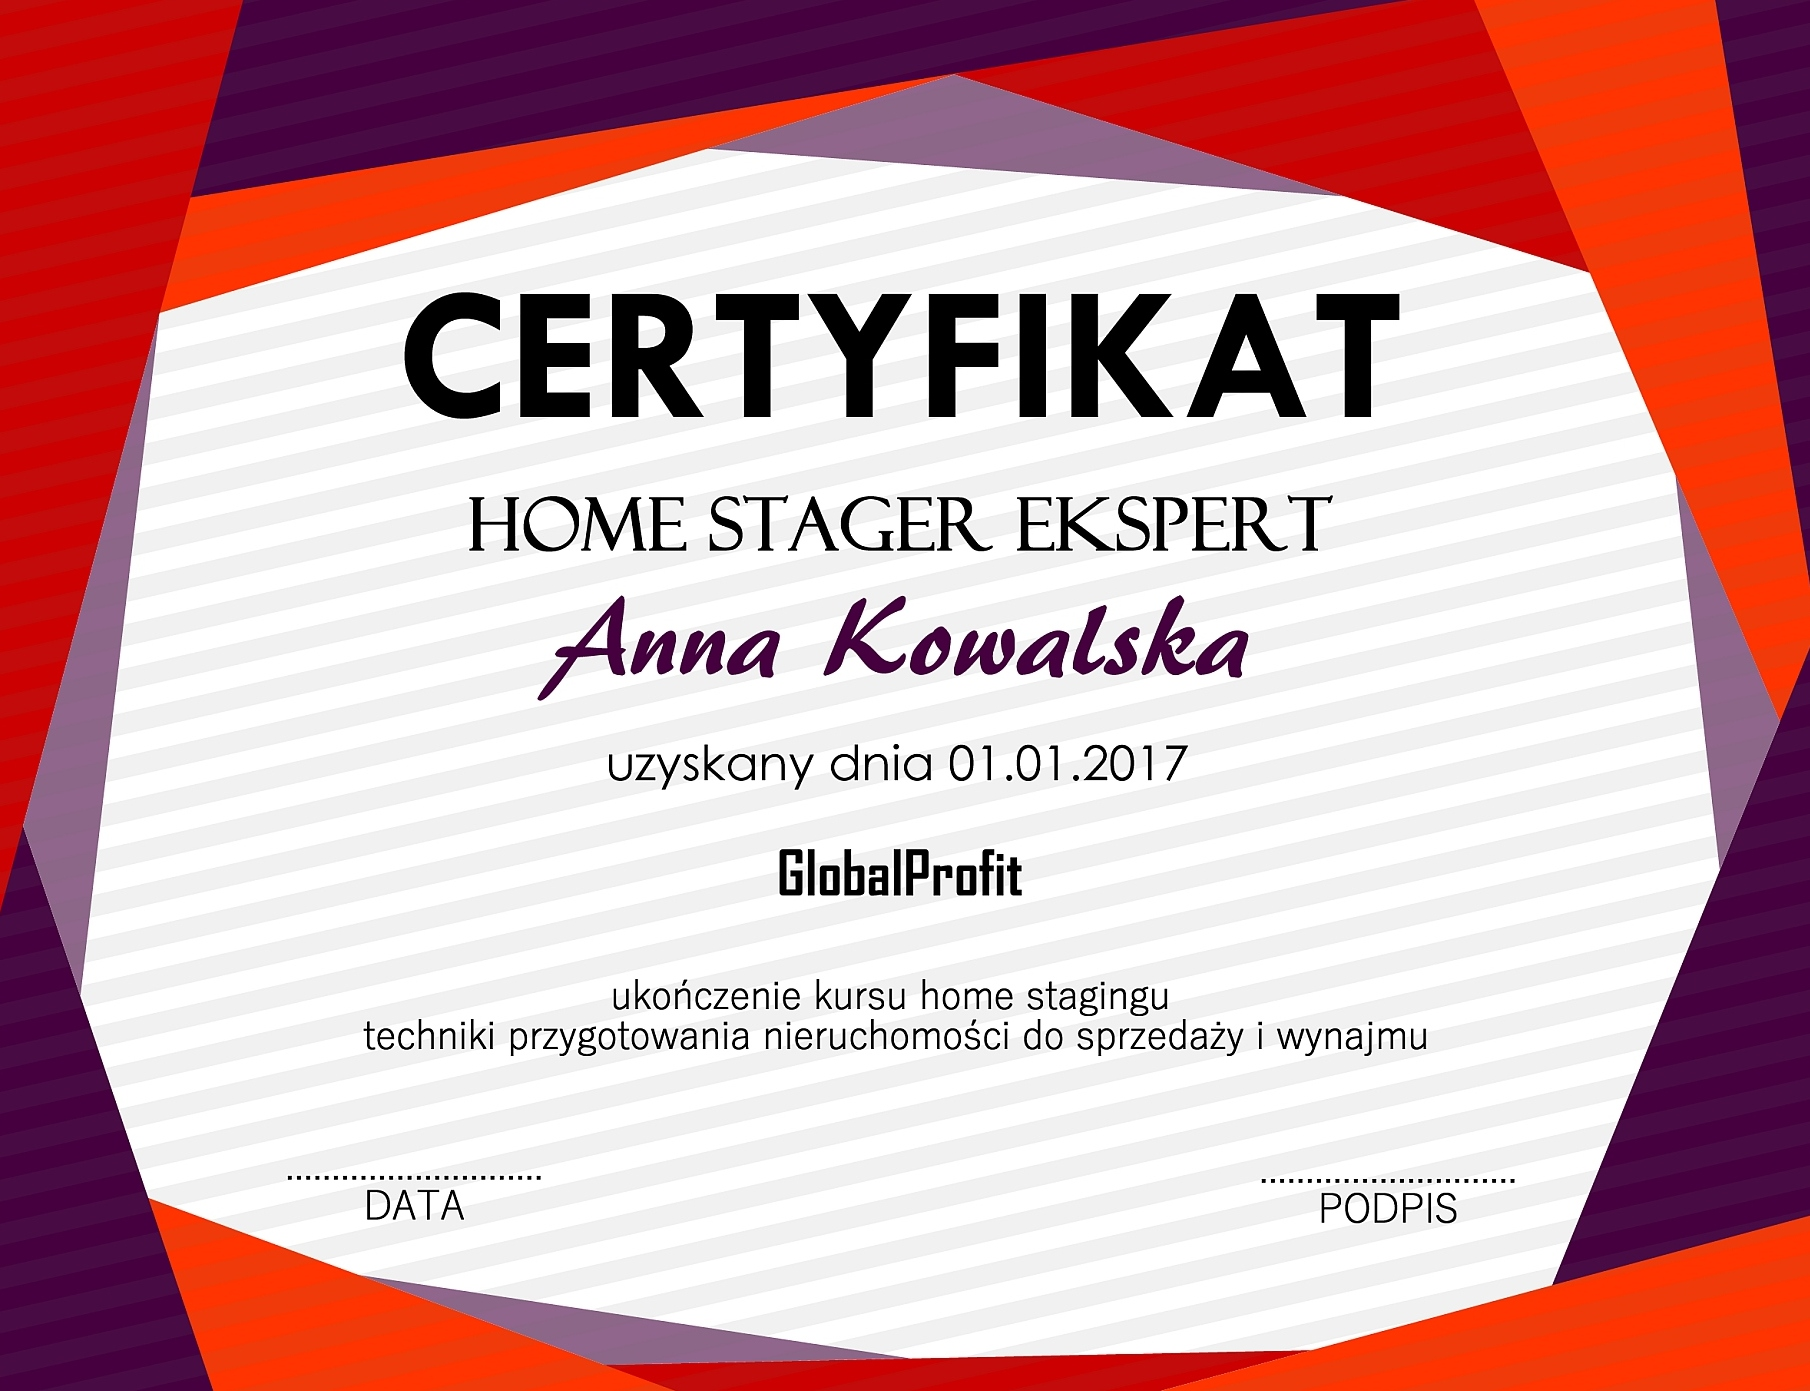 Certyfikat home staging - sekrety home stagingu